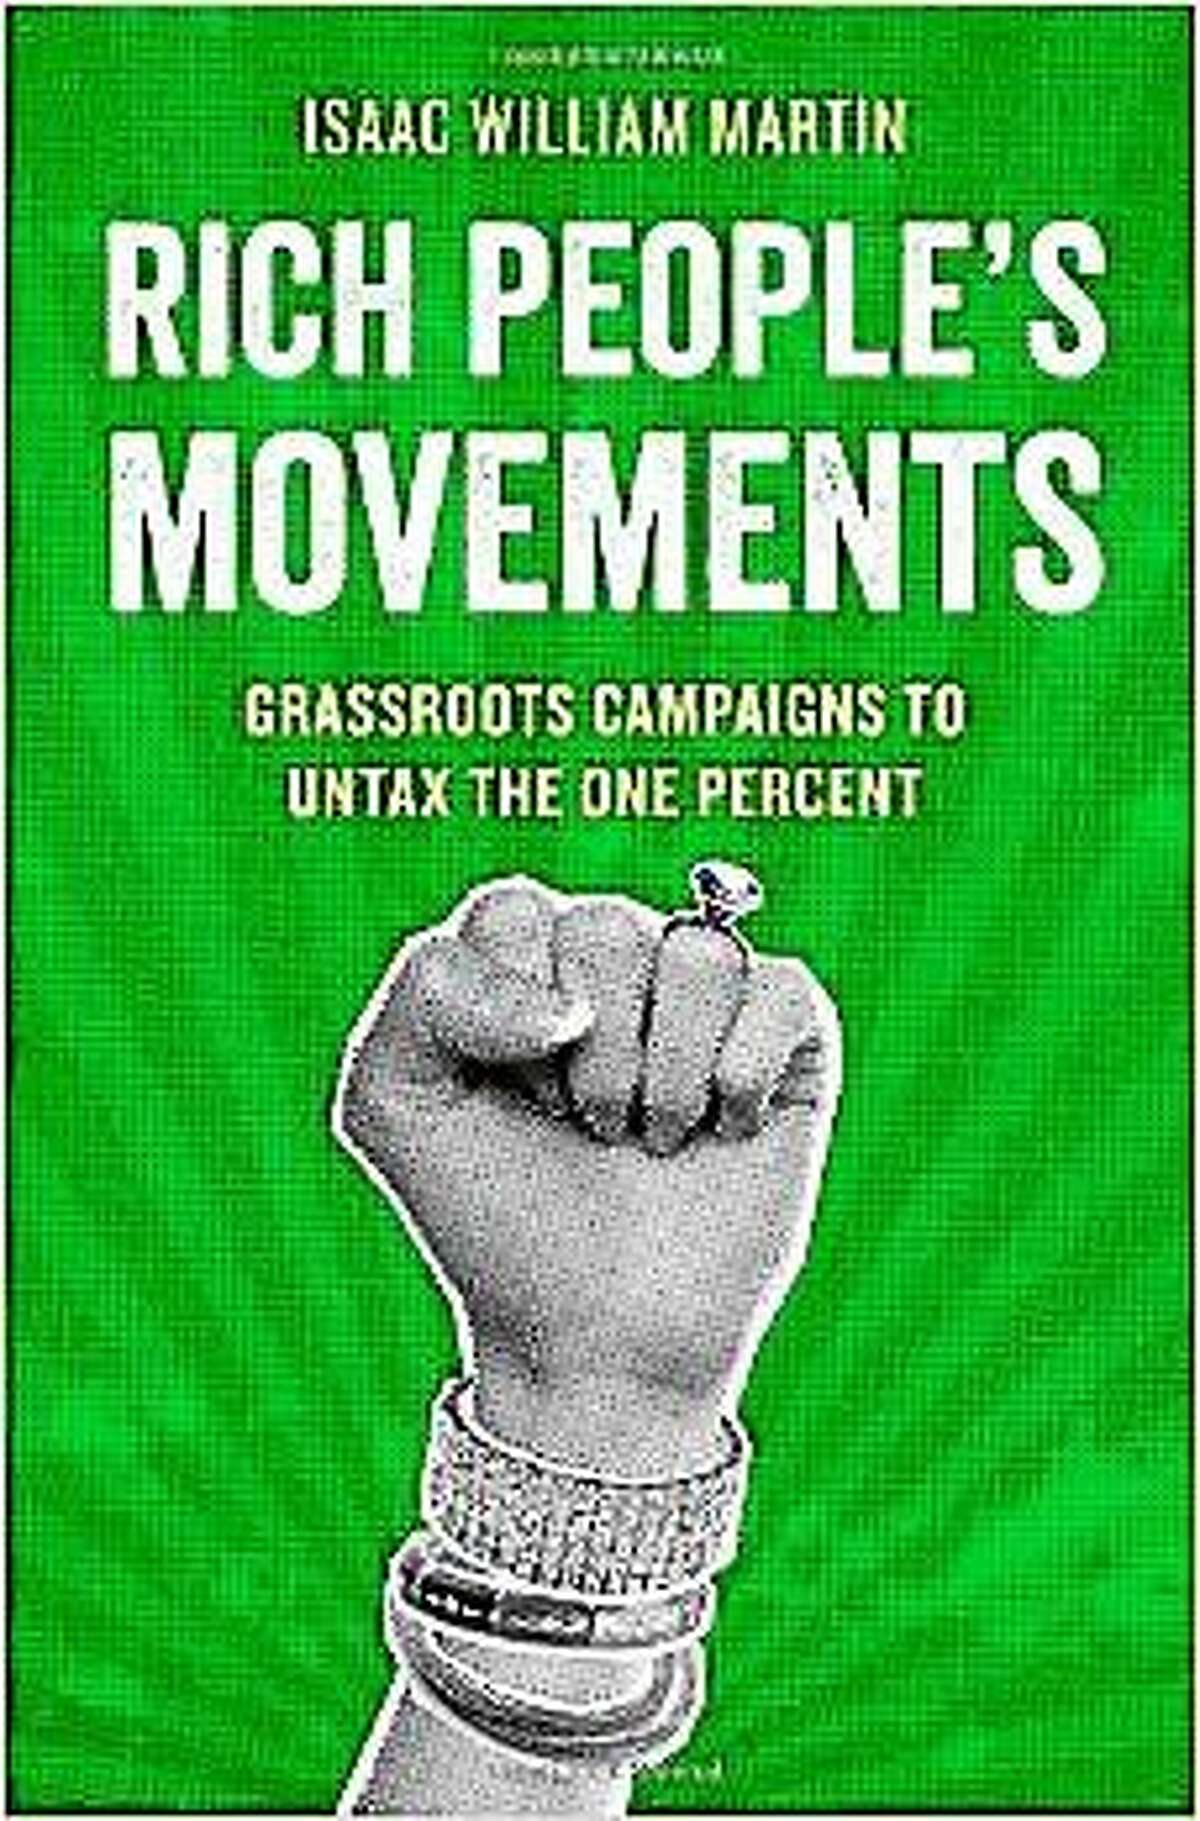 Rich People's Movements by Isaac William Martin